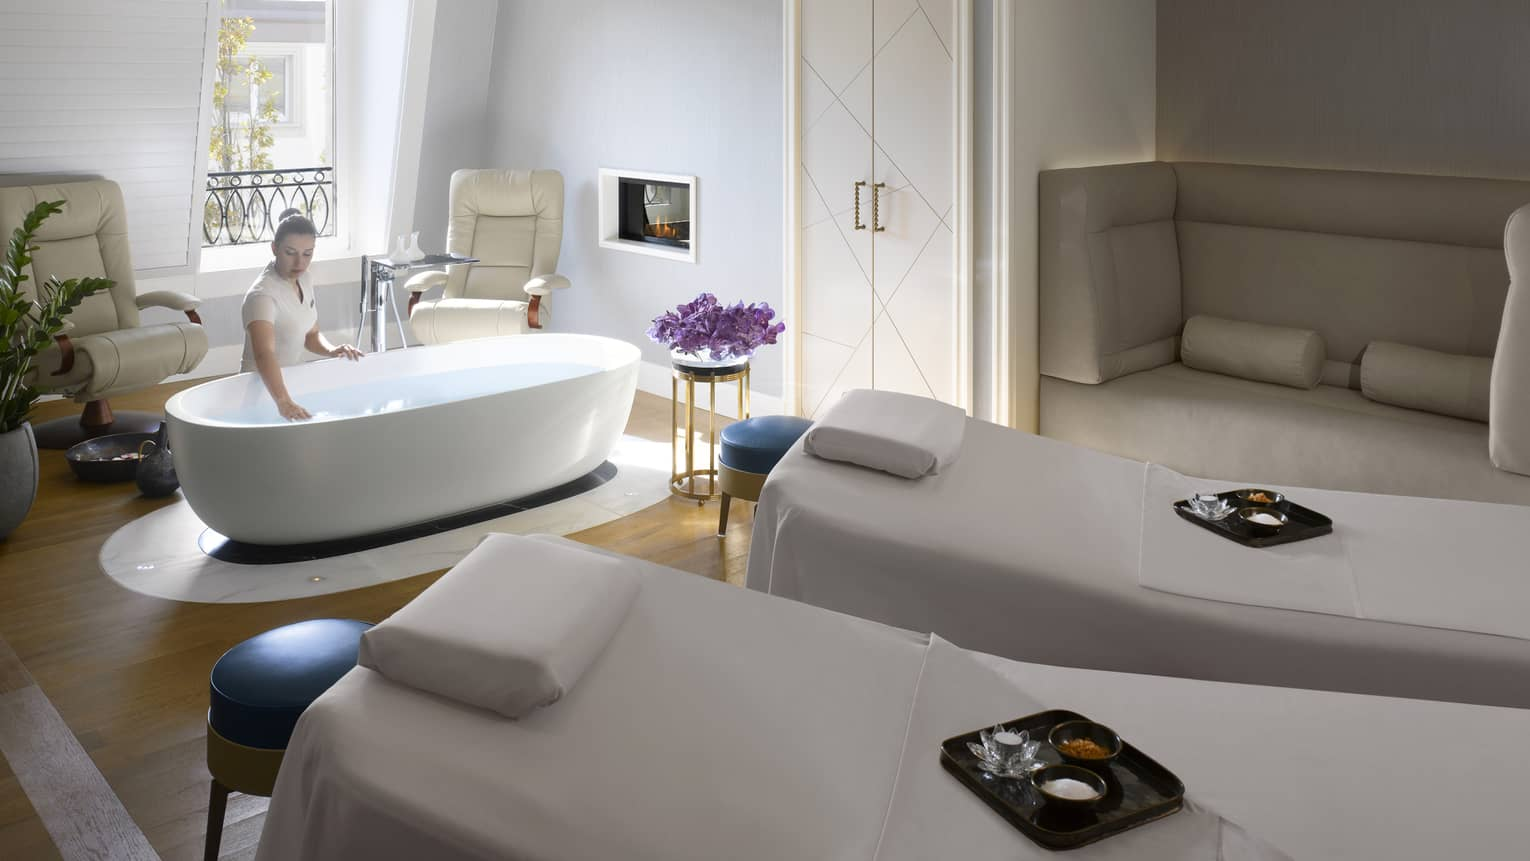 Two white spa beds side-by-side with yellow sashes, trays with salts and oils, woman makes bath